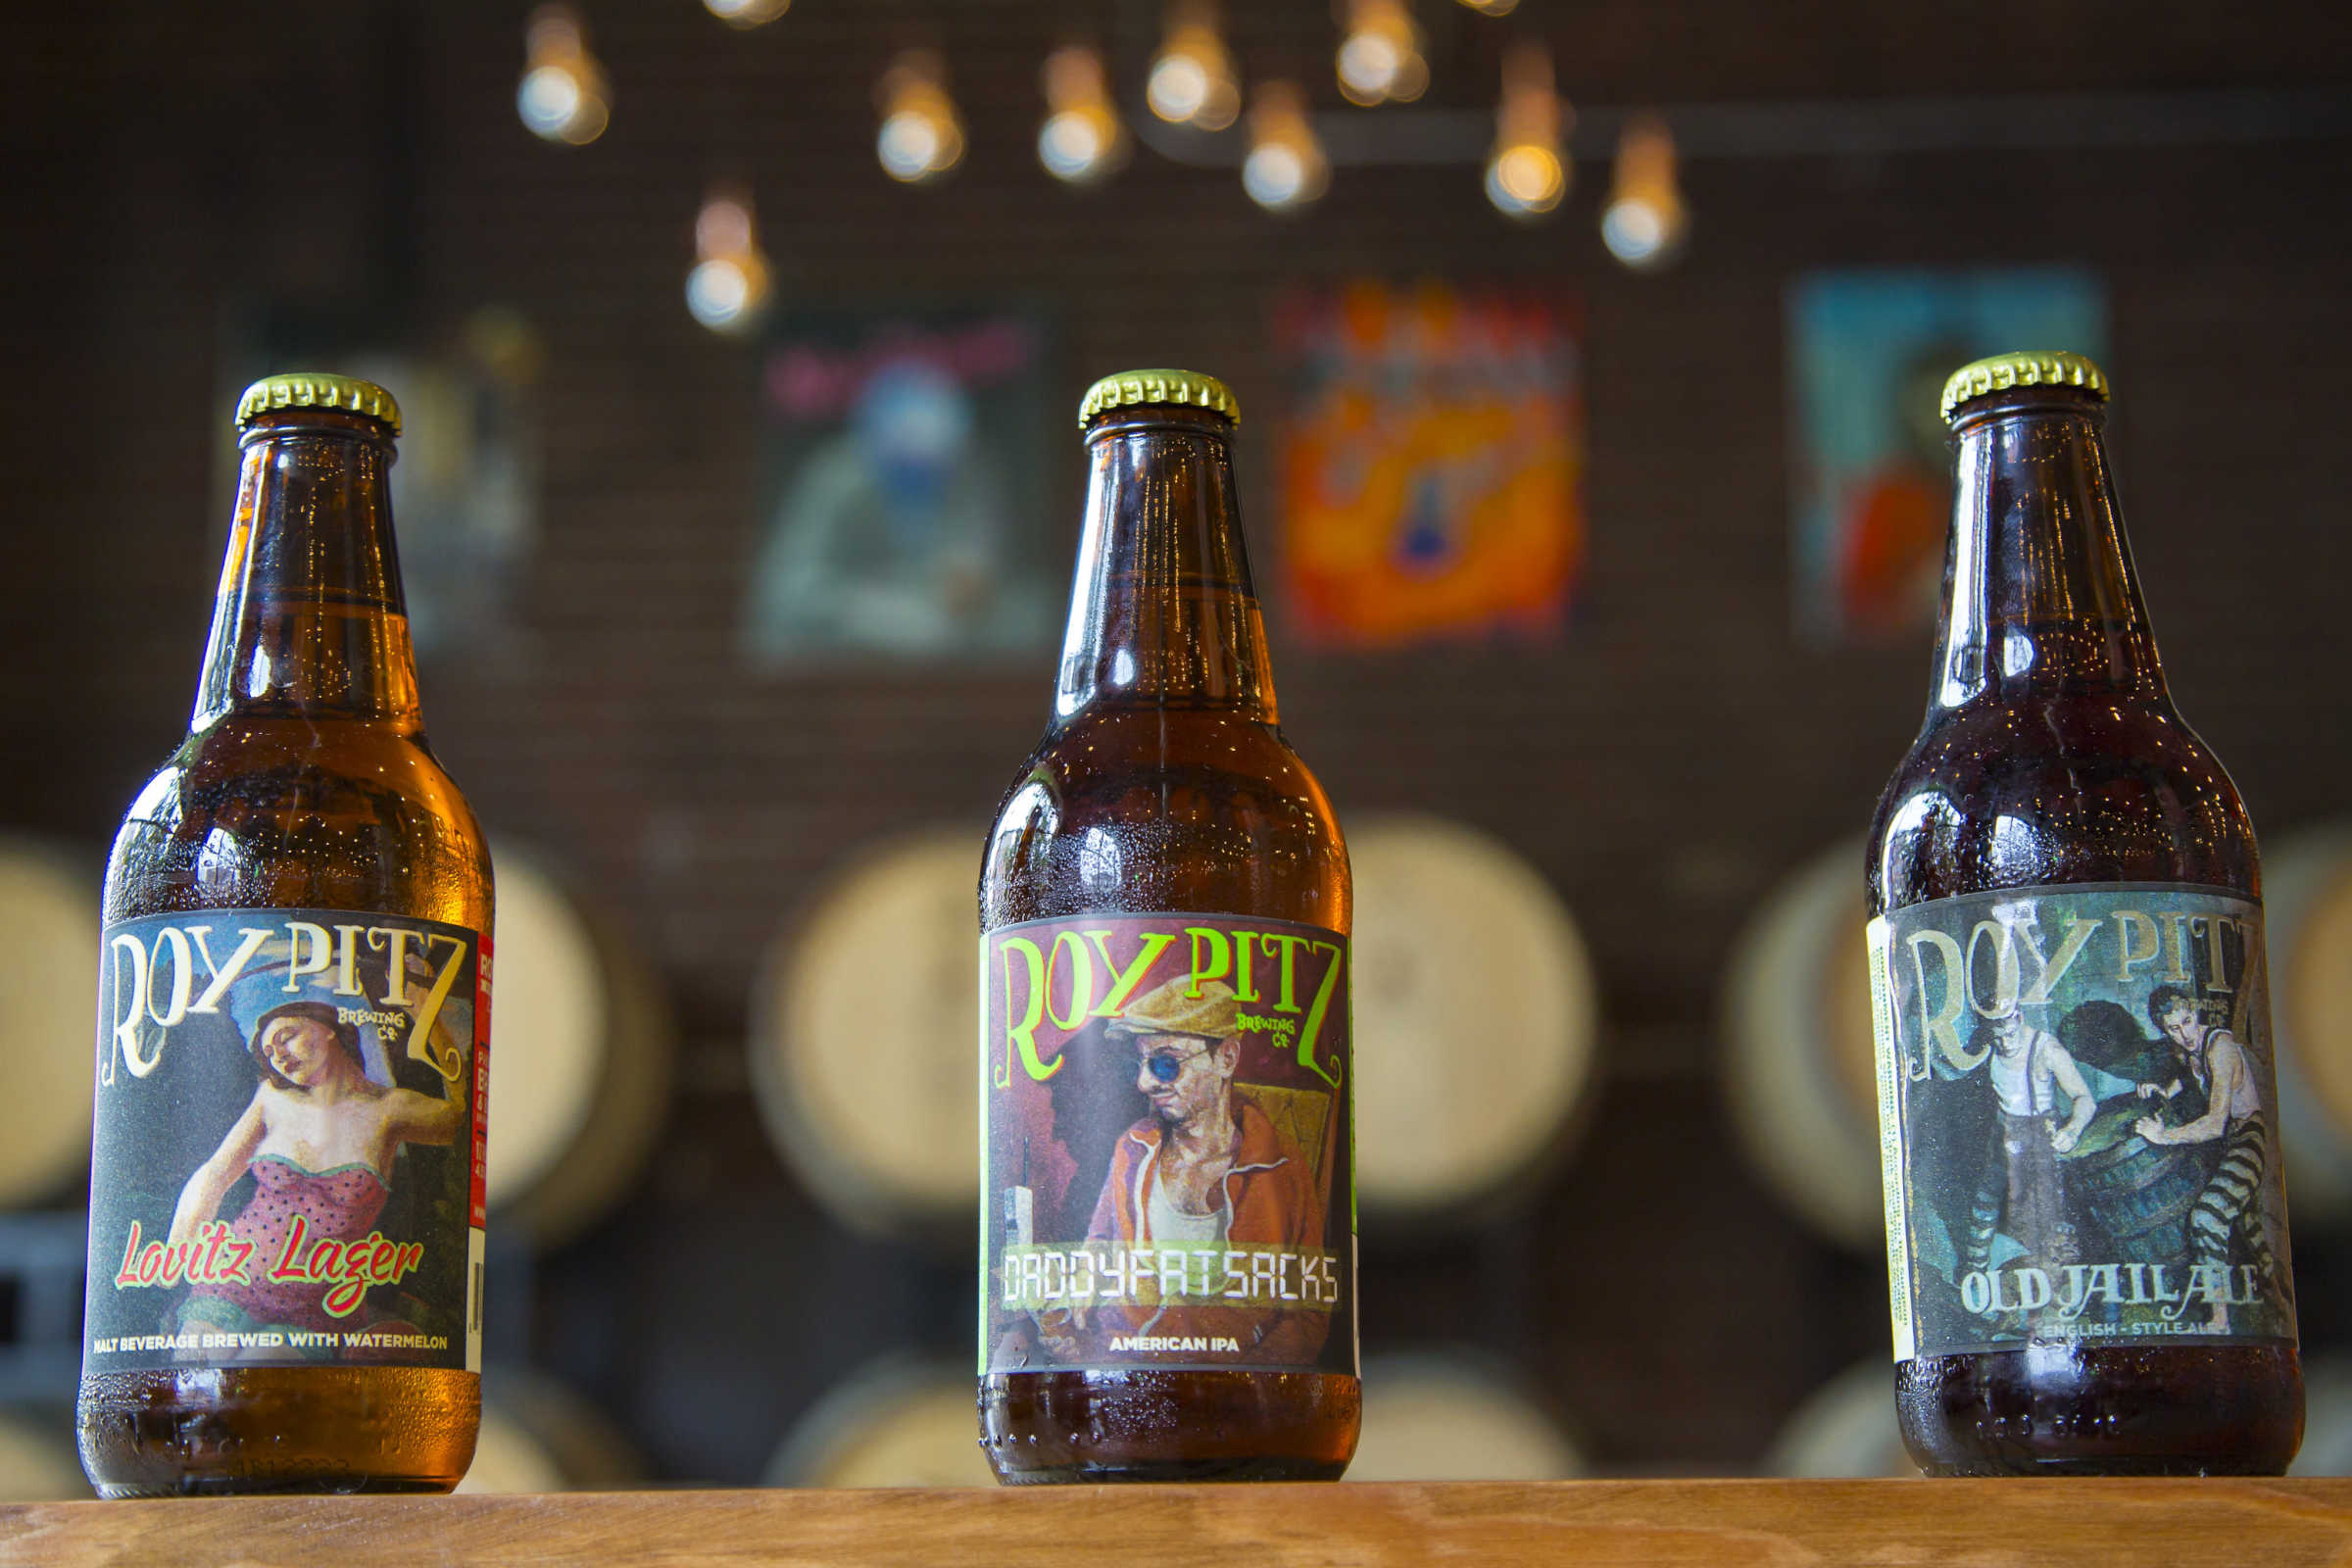 Roy-Pitz, a brewery based in Chambersburg, has hired a Maryland artist to create original oil paintings to be reproduced on each beer label and tap handle.